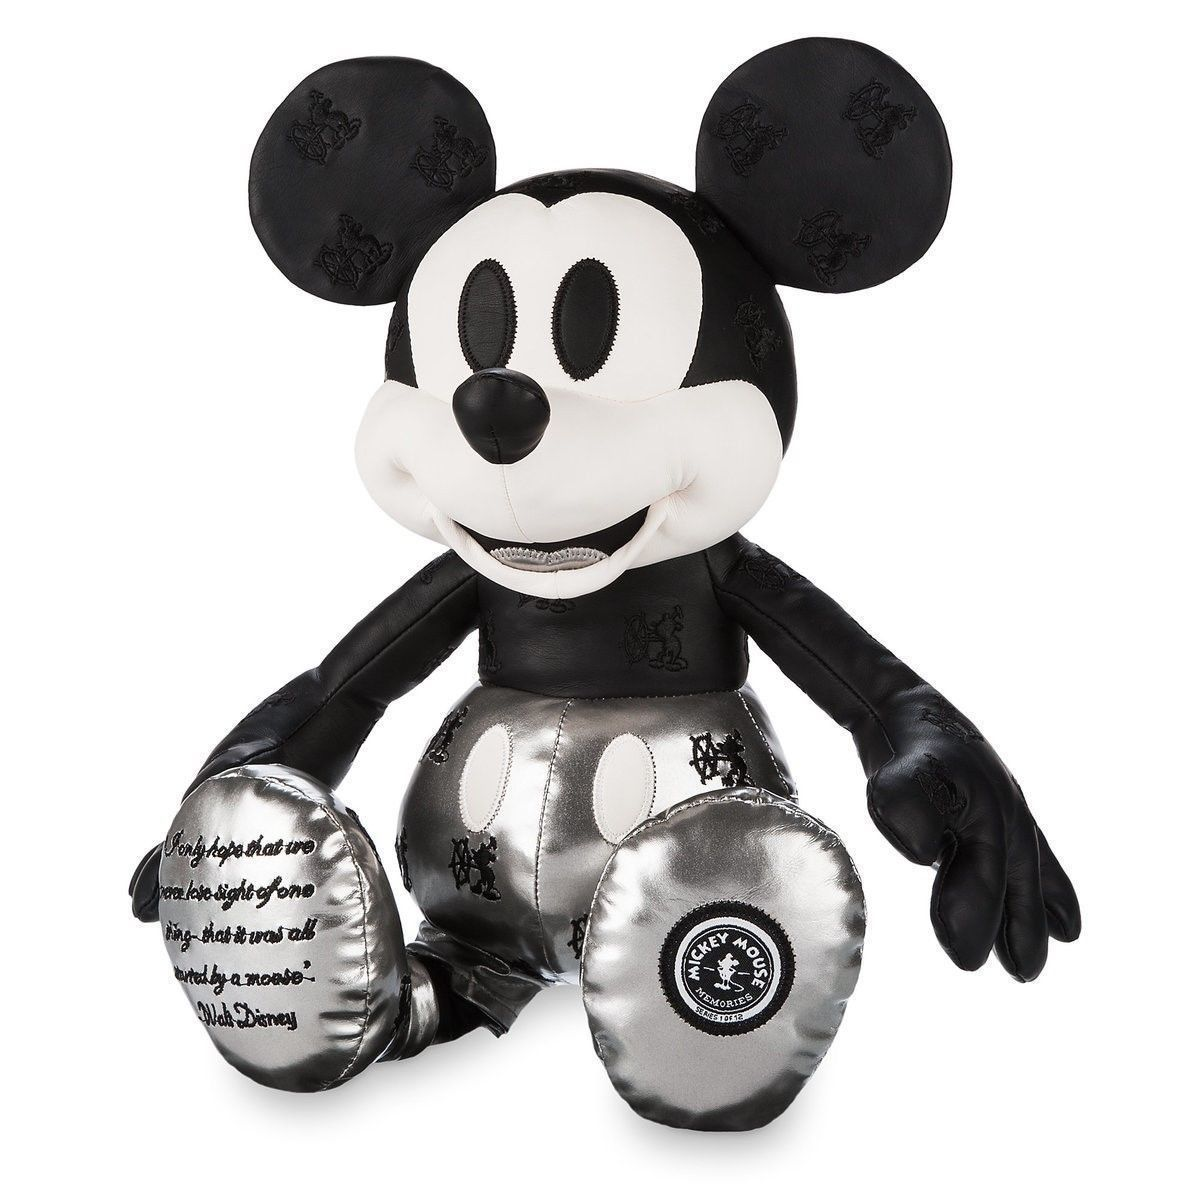 Disney Store Mickey Mouse Memories Steamboat Willie Limited Plush New with Tags